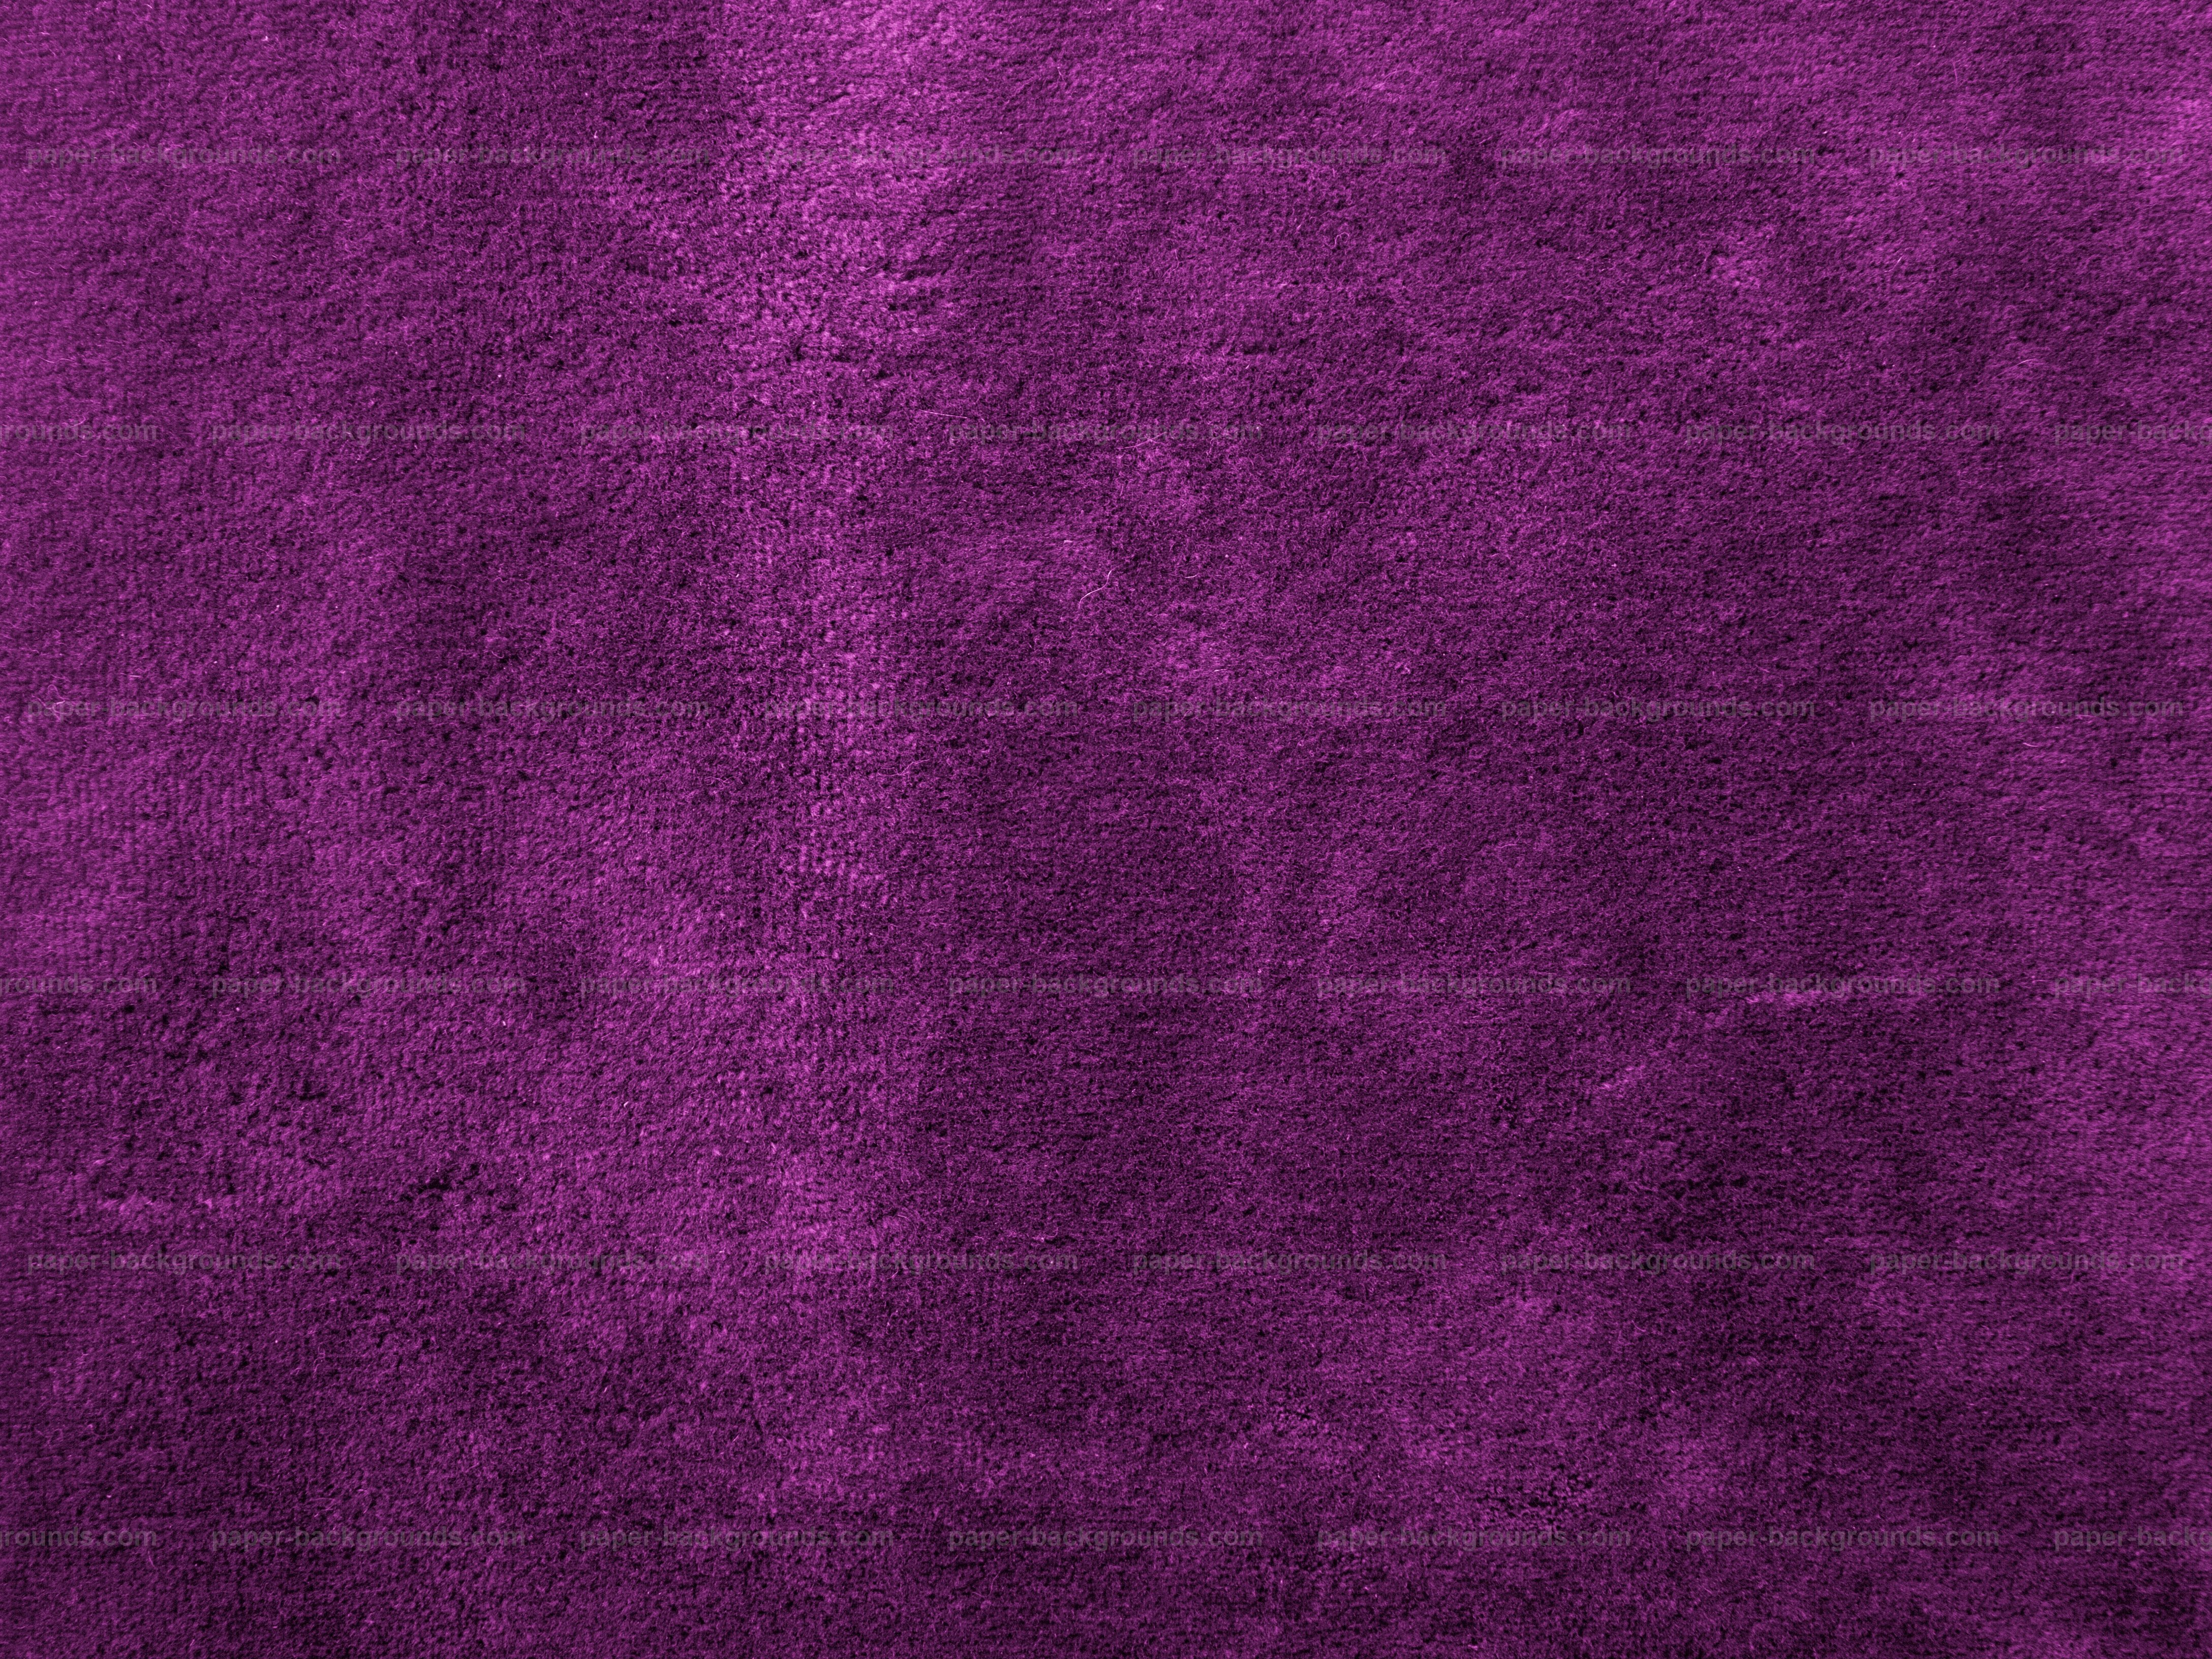 Purple velvet wallpaper wallpapersafari for Purple brick wallpaper